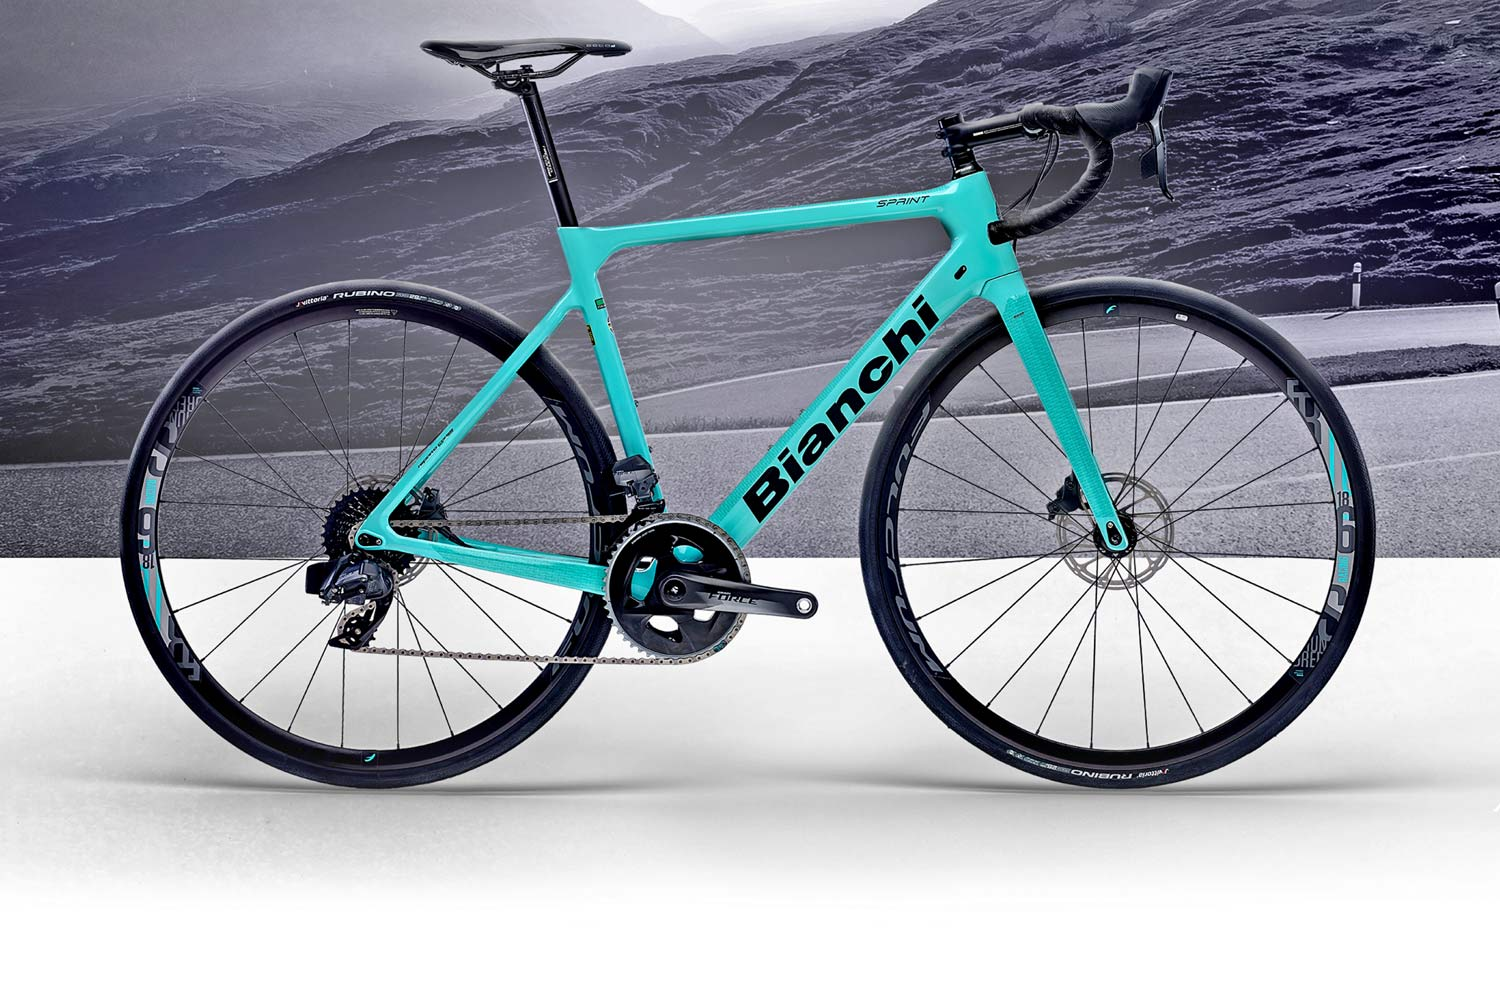 Bianchi is back in the Sprint, with new workhorse carbon